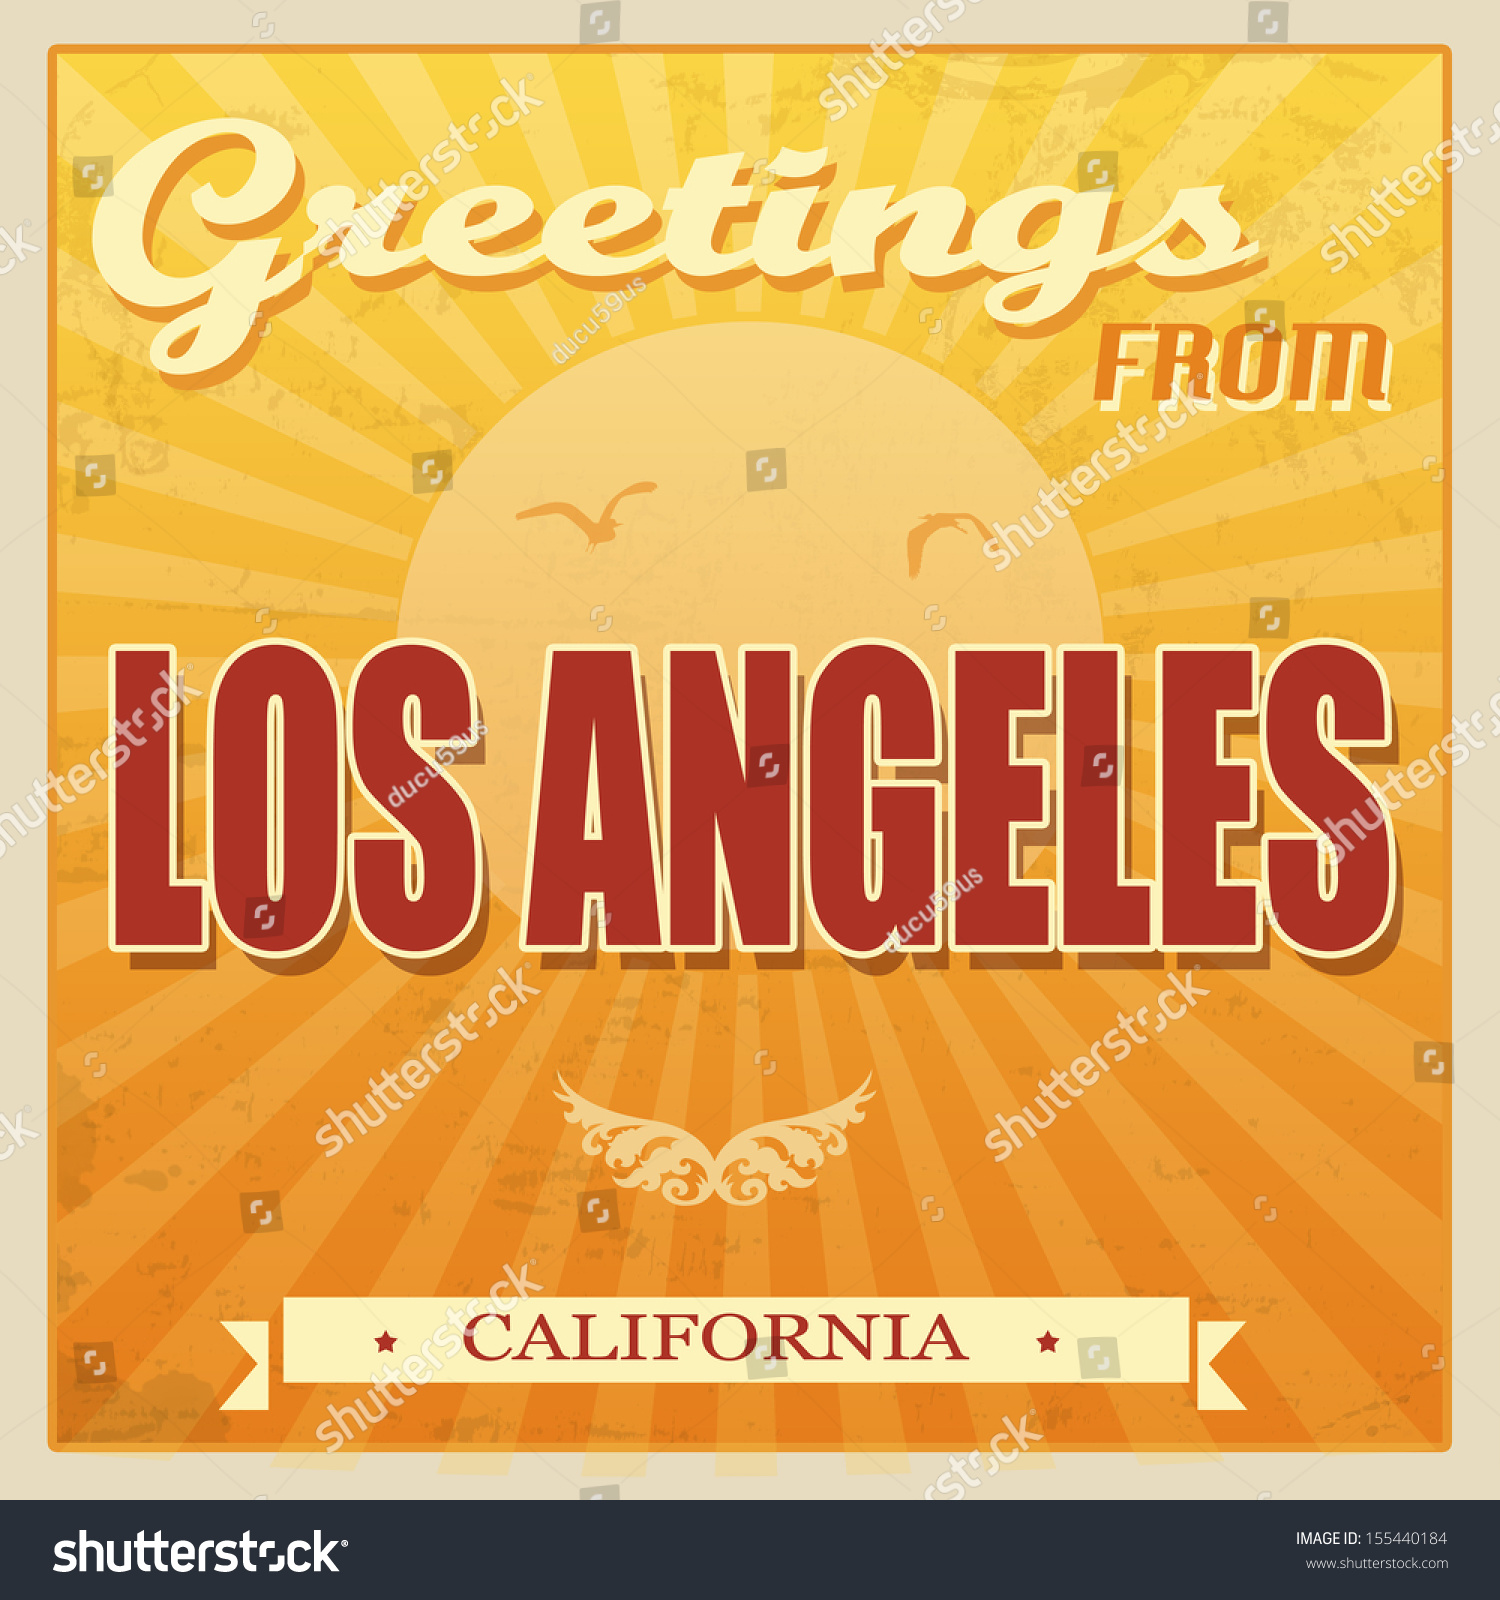 Vintage Touristic Greeting Card Los Angeles Stock Vector - Los angeles posters vintage